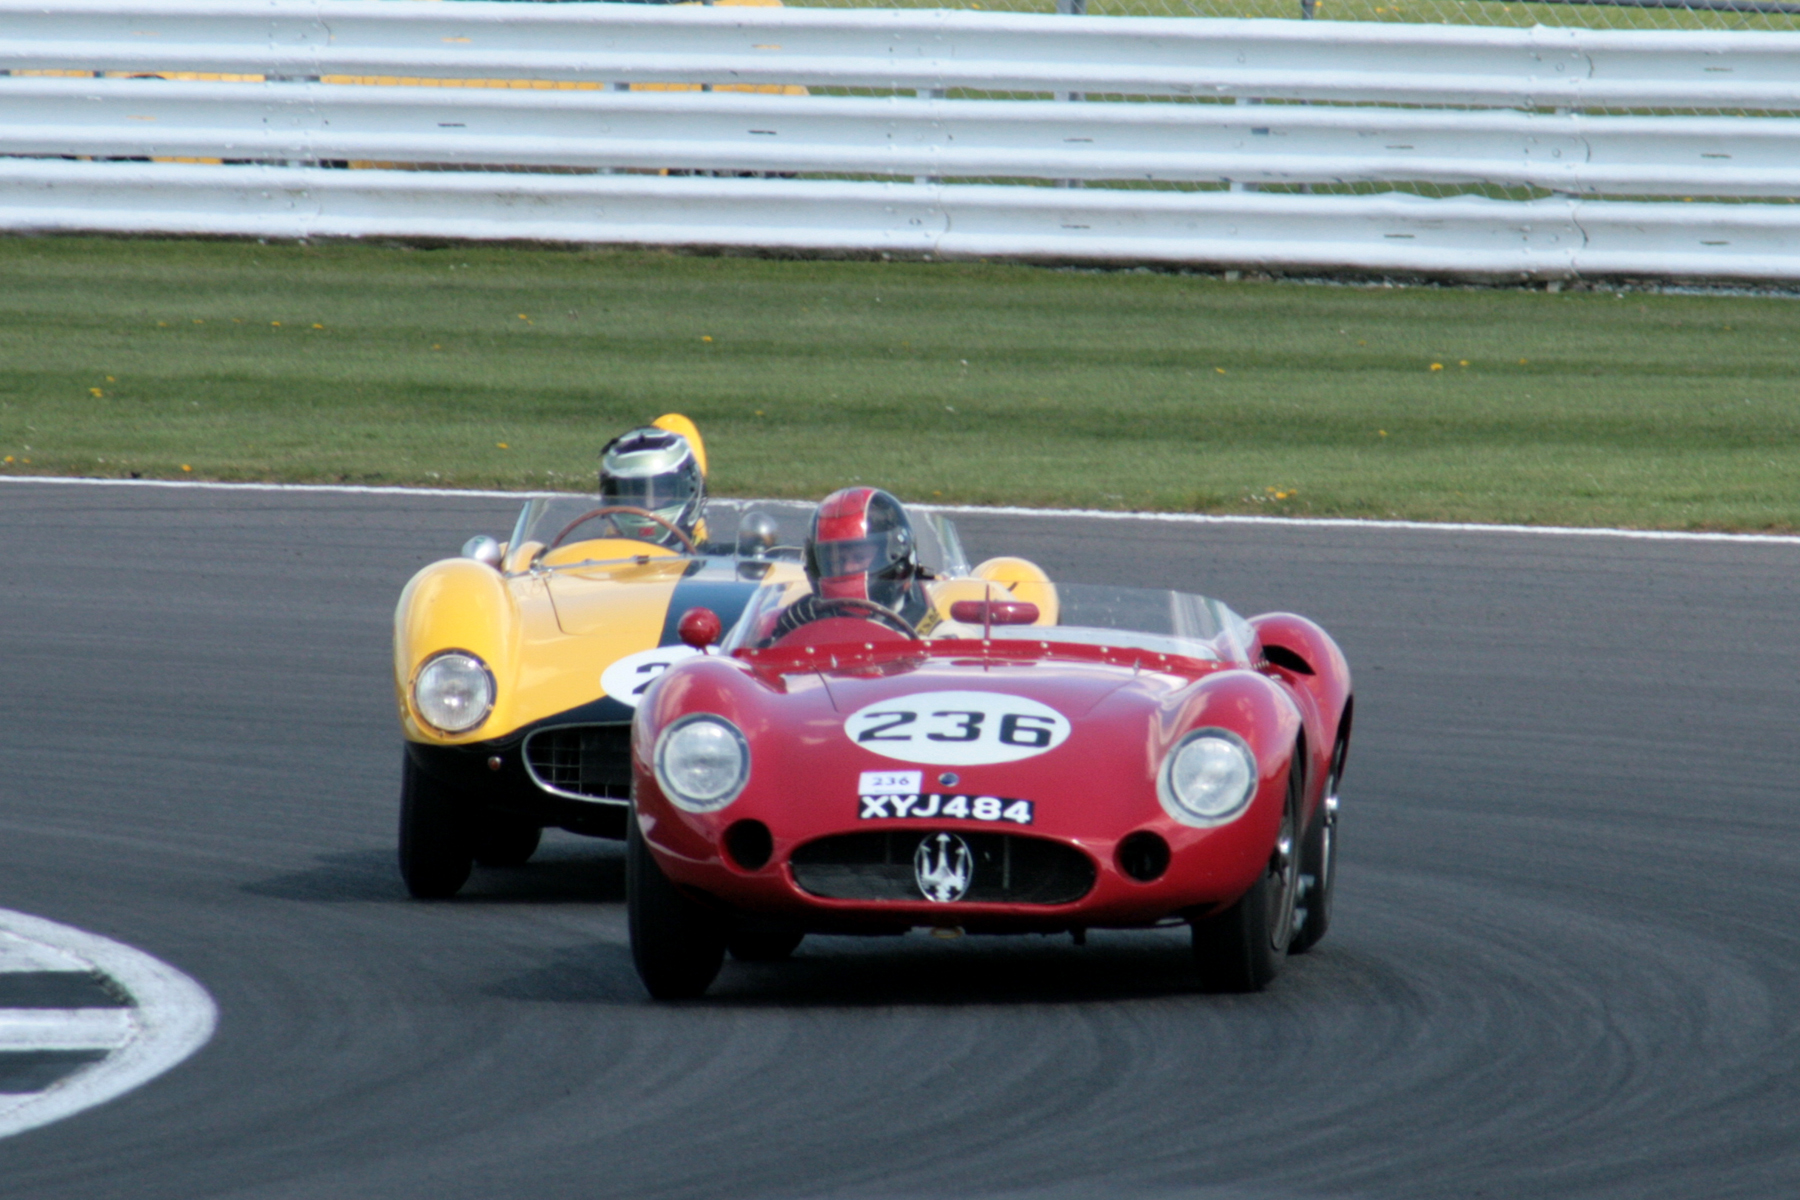 Superb battle for what was 2nd at the time between the Maserati and Ferrari                          Photo - John Turner